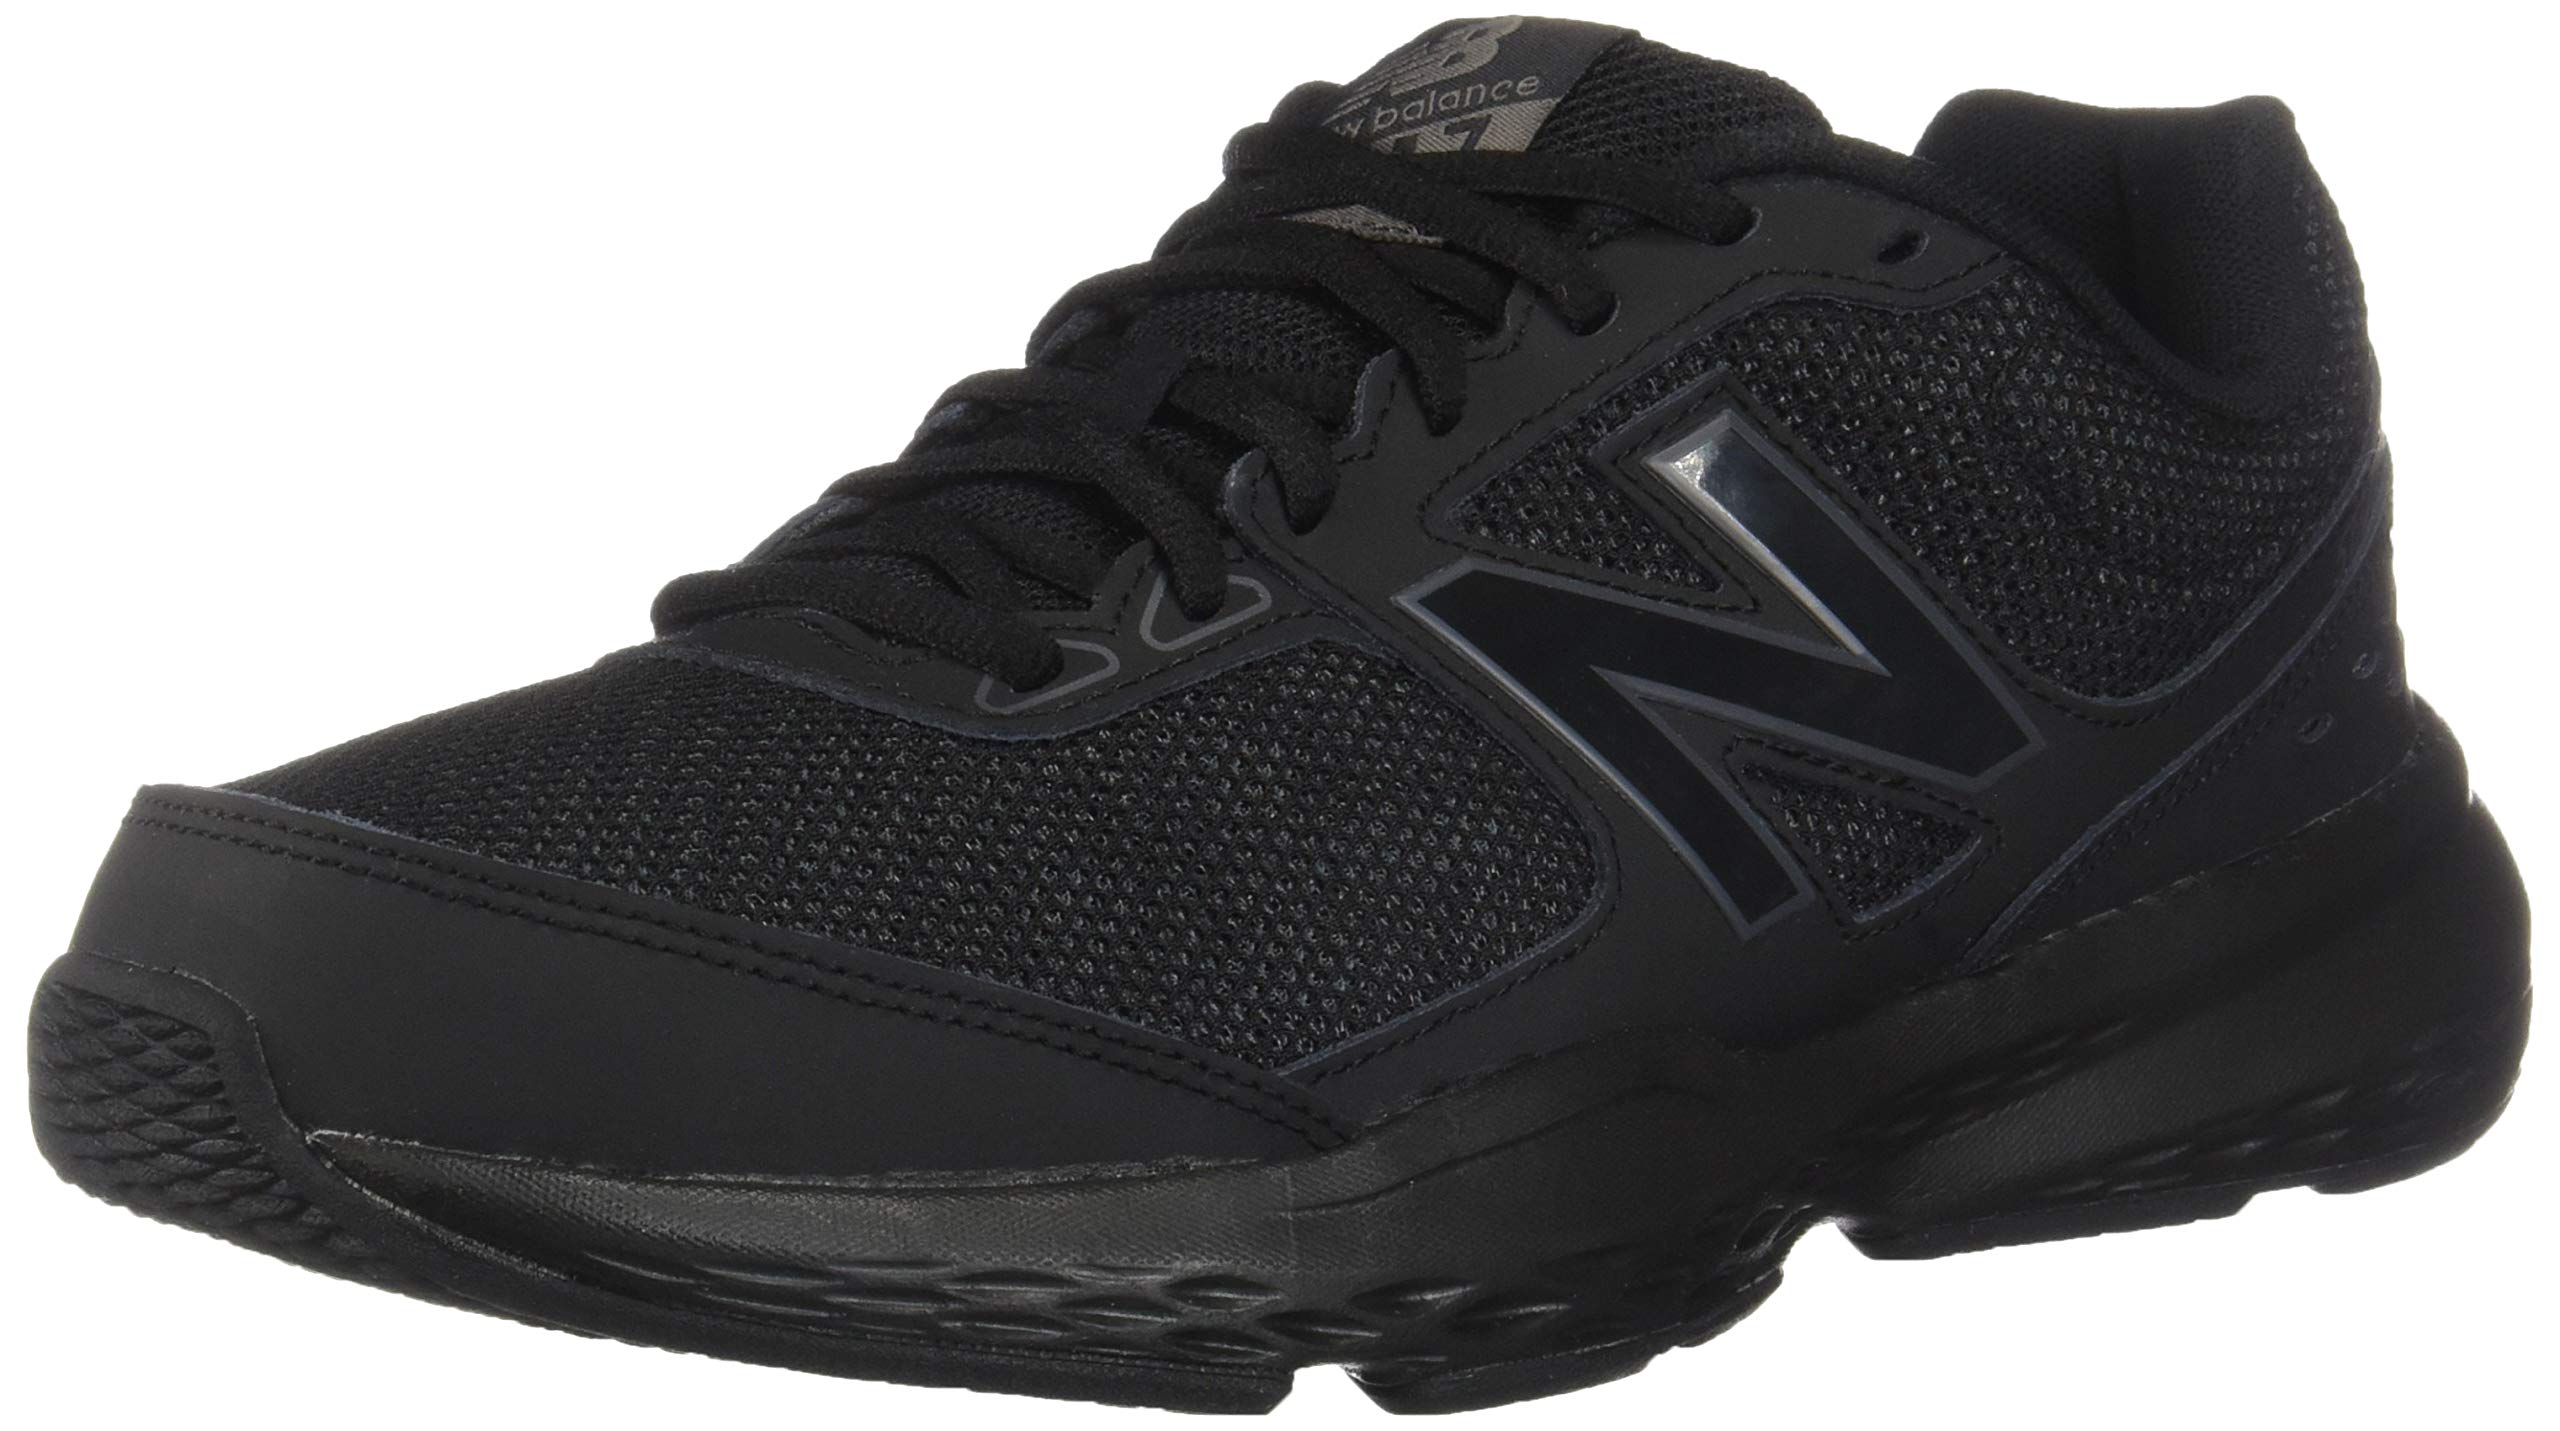 New Balance 517 CUs - Mob Black